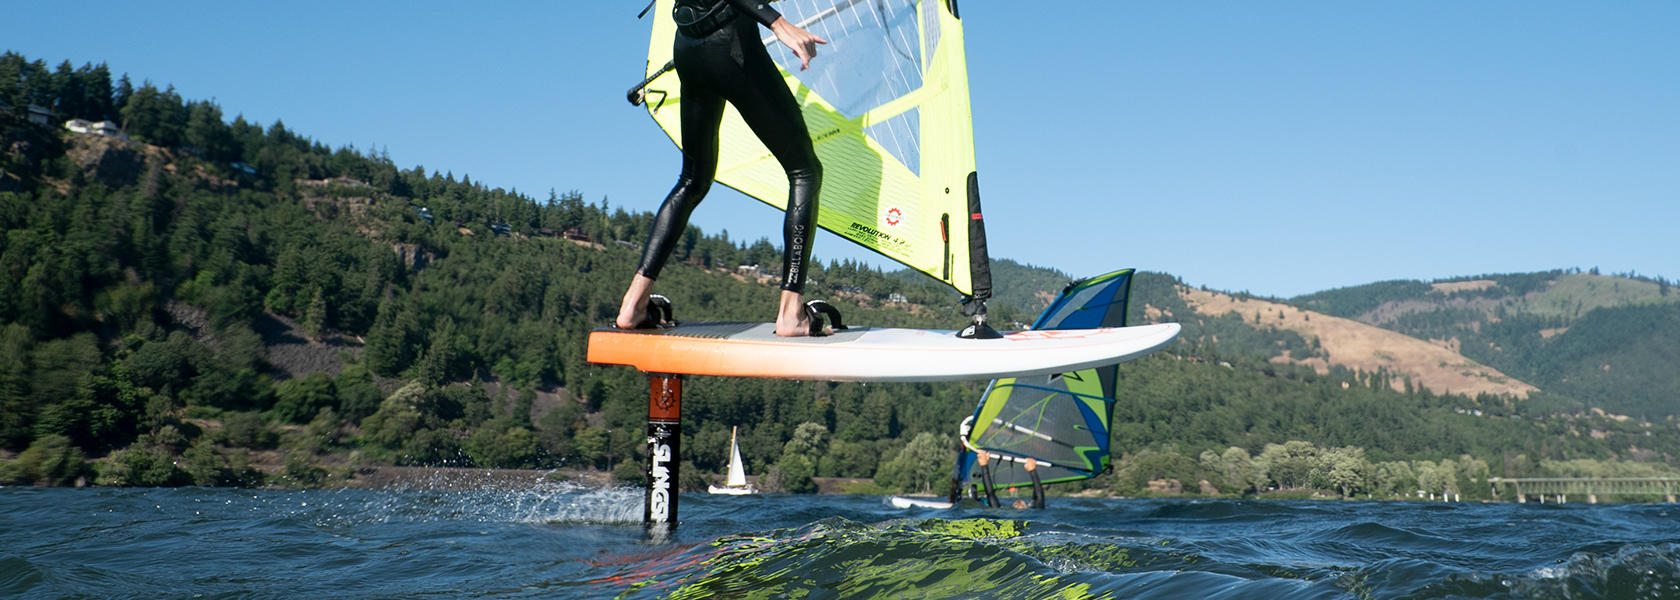 WINDFOIL BOARDS